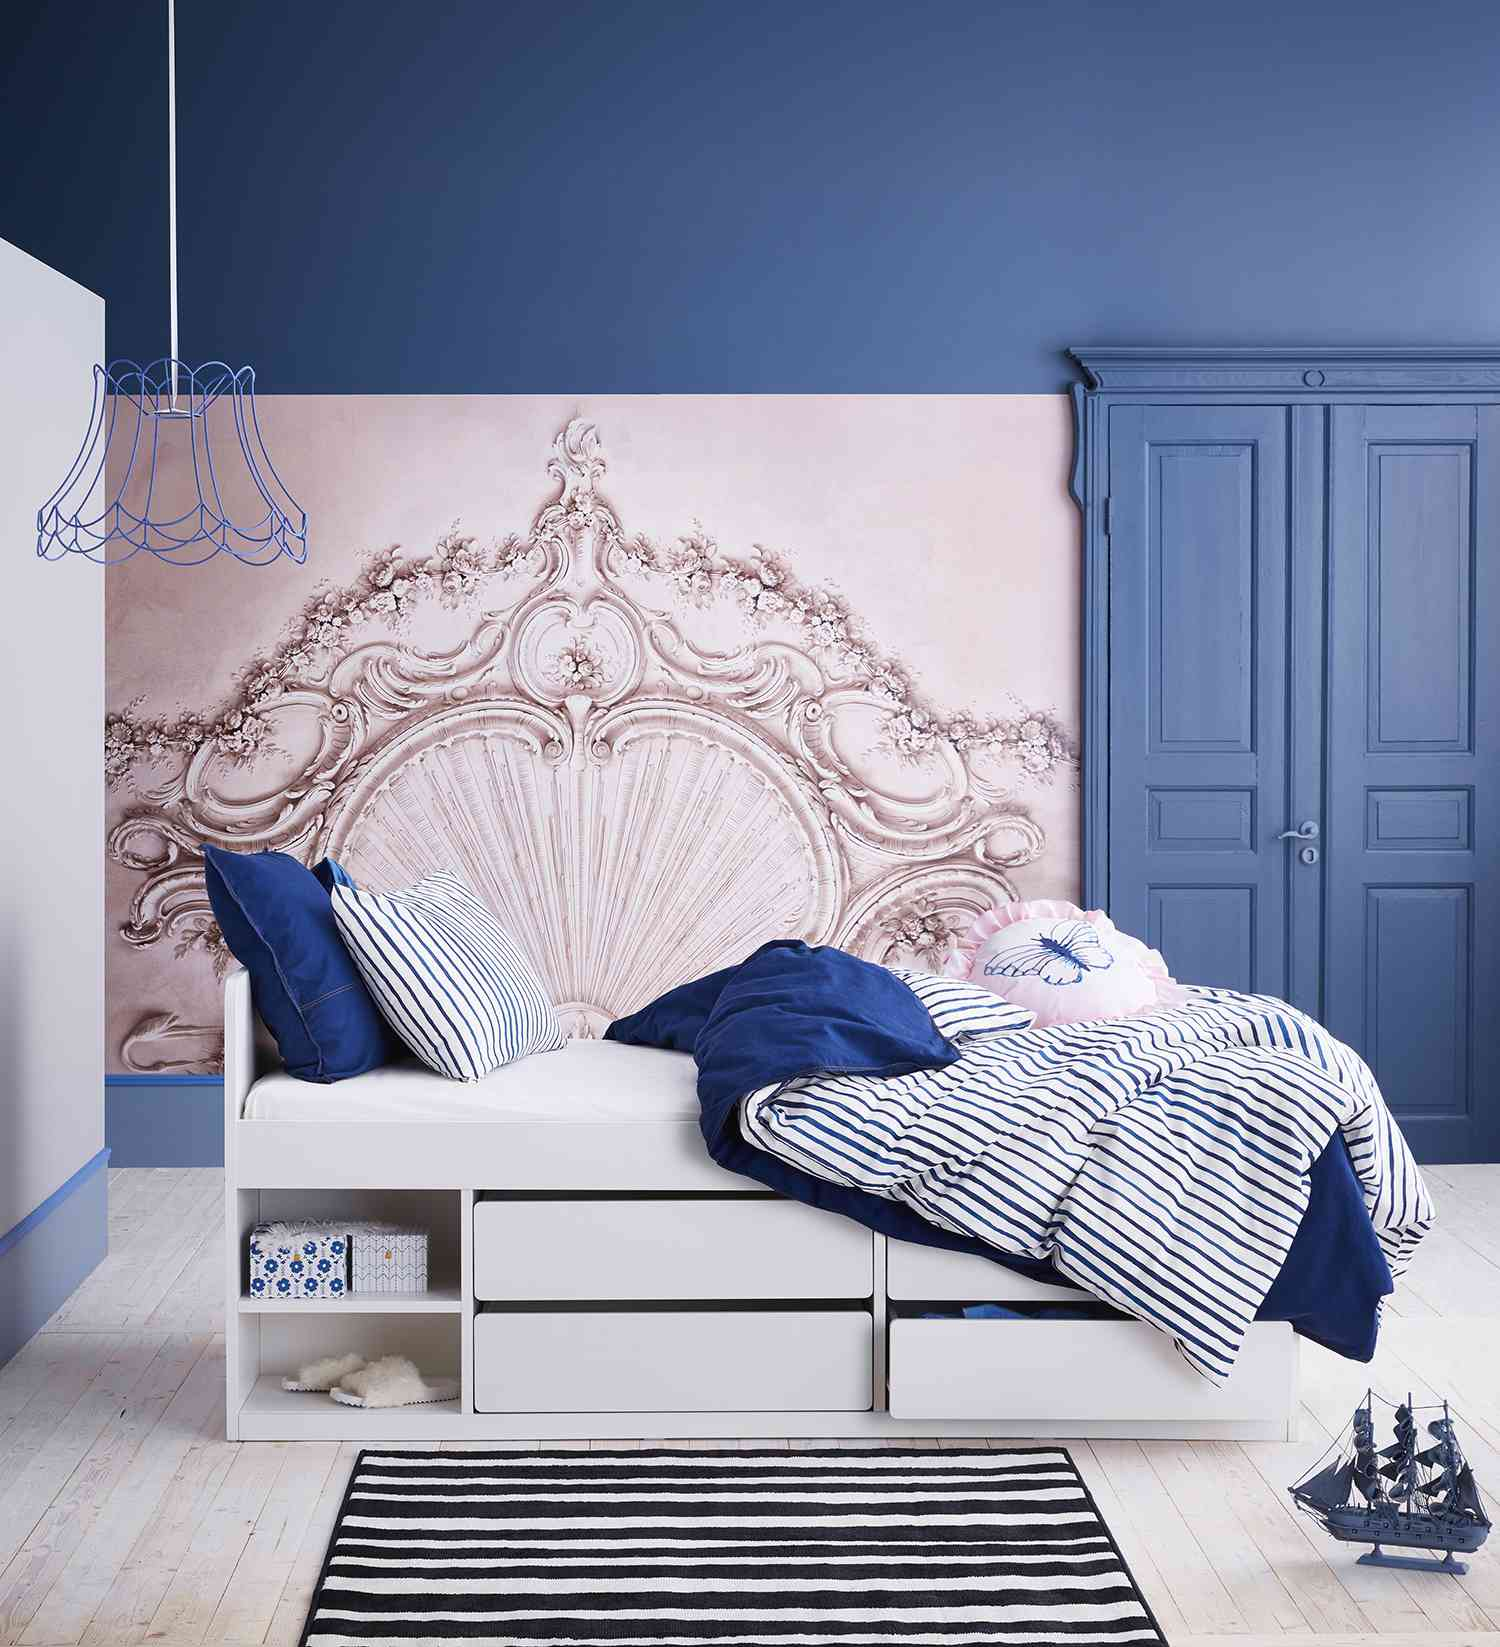 White twin bed with built-in storage against blue and pink walls